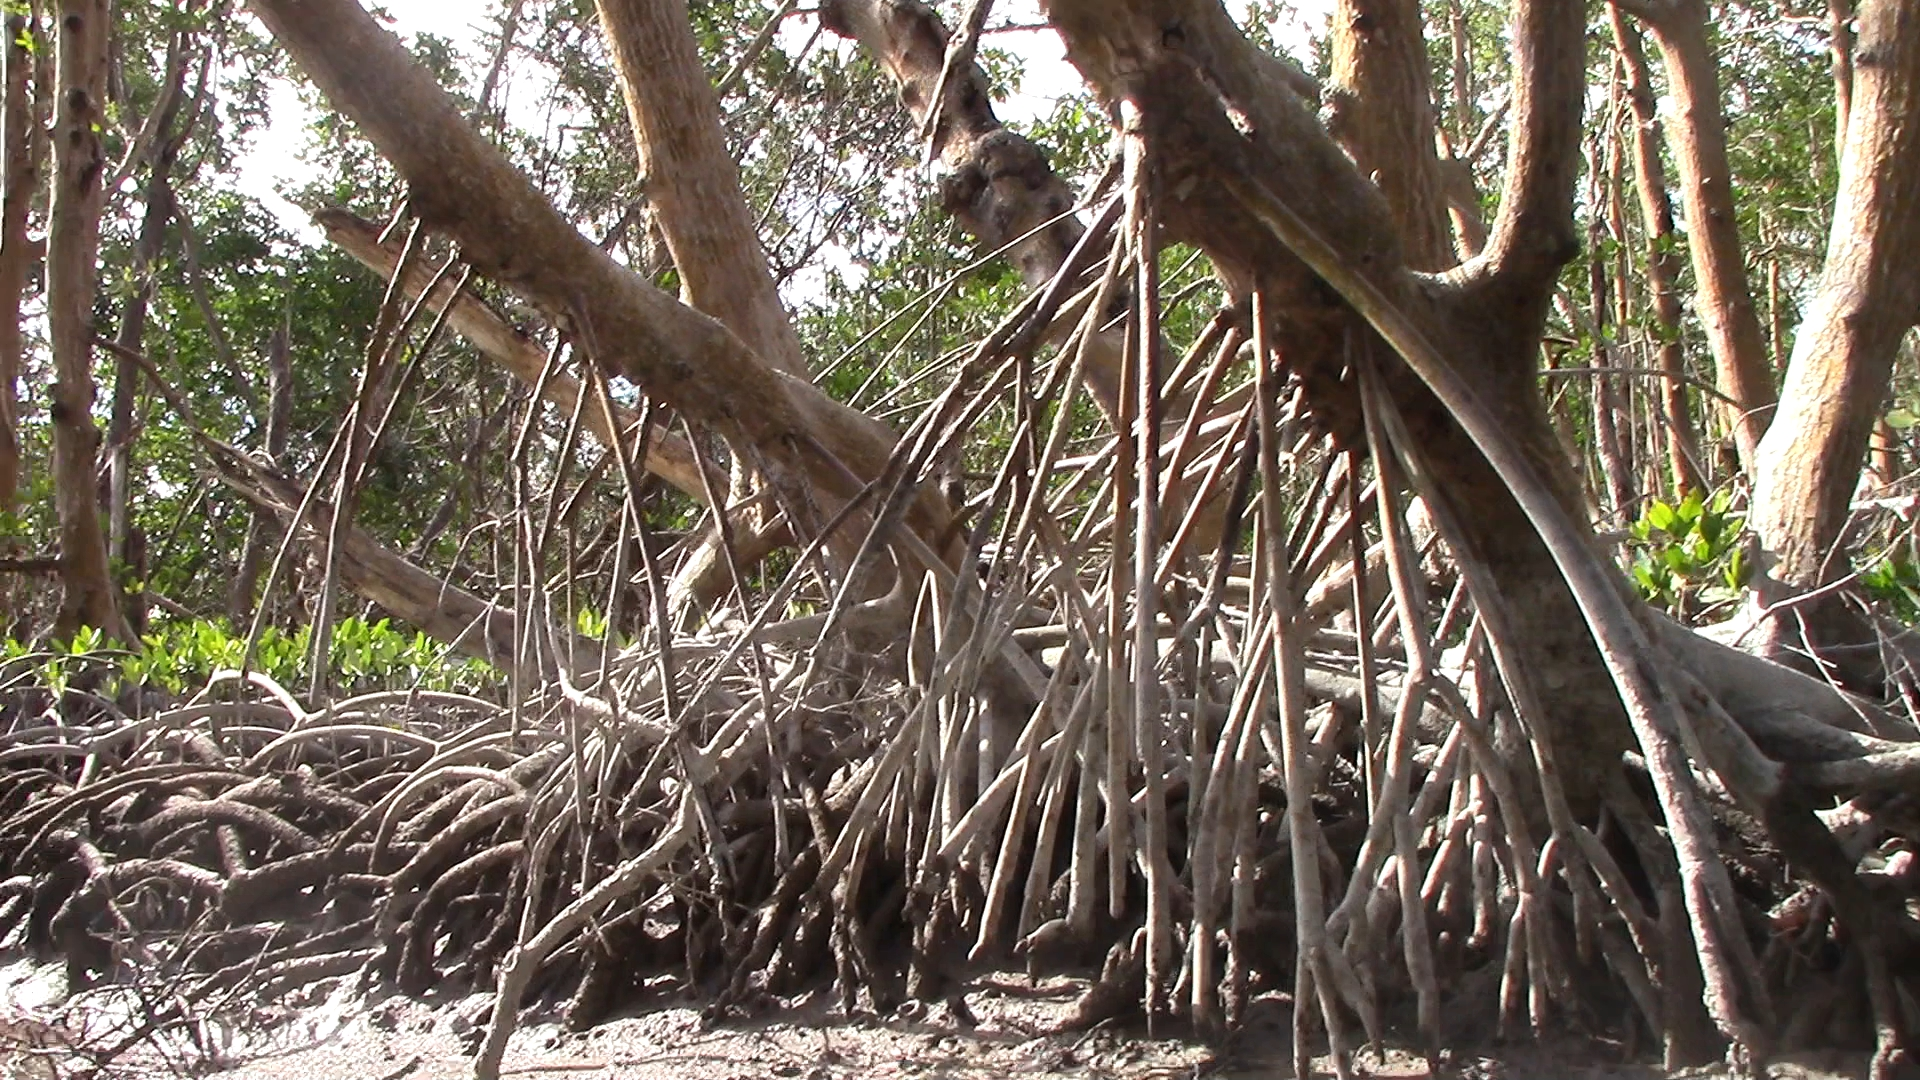 Long drop roots help the trees stabilize and aid in resperation.